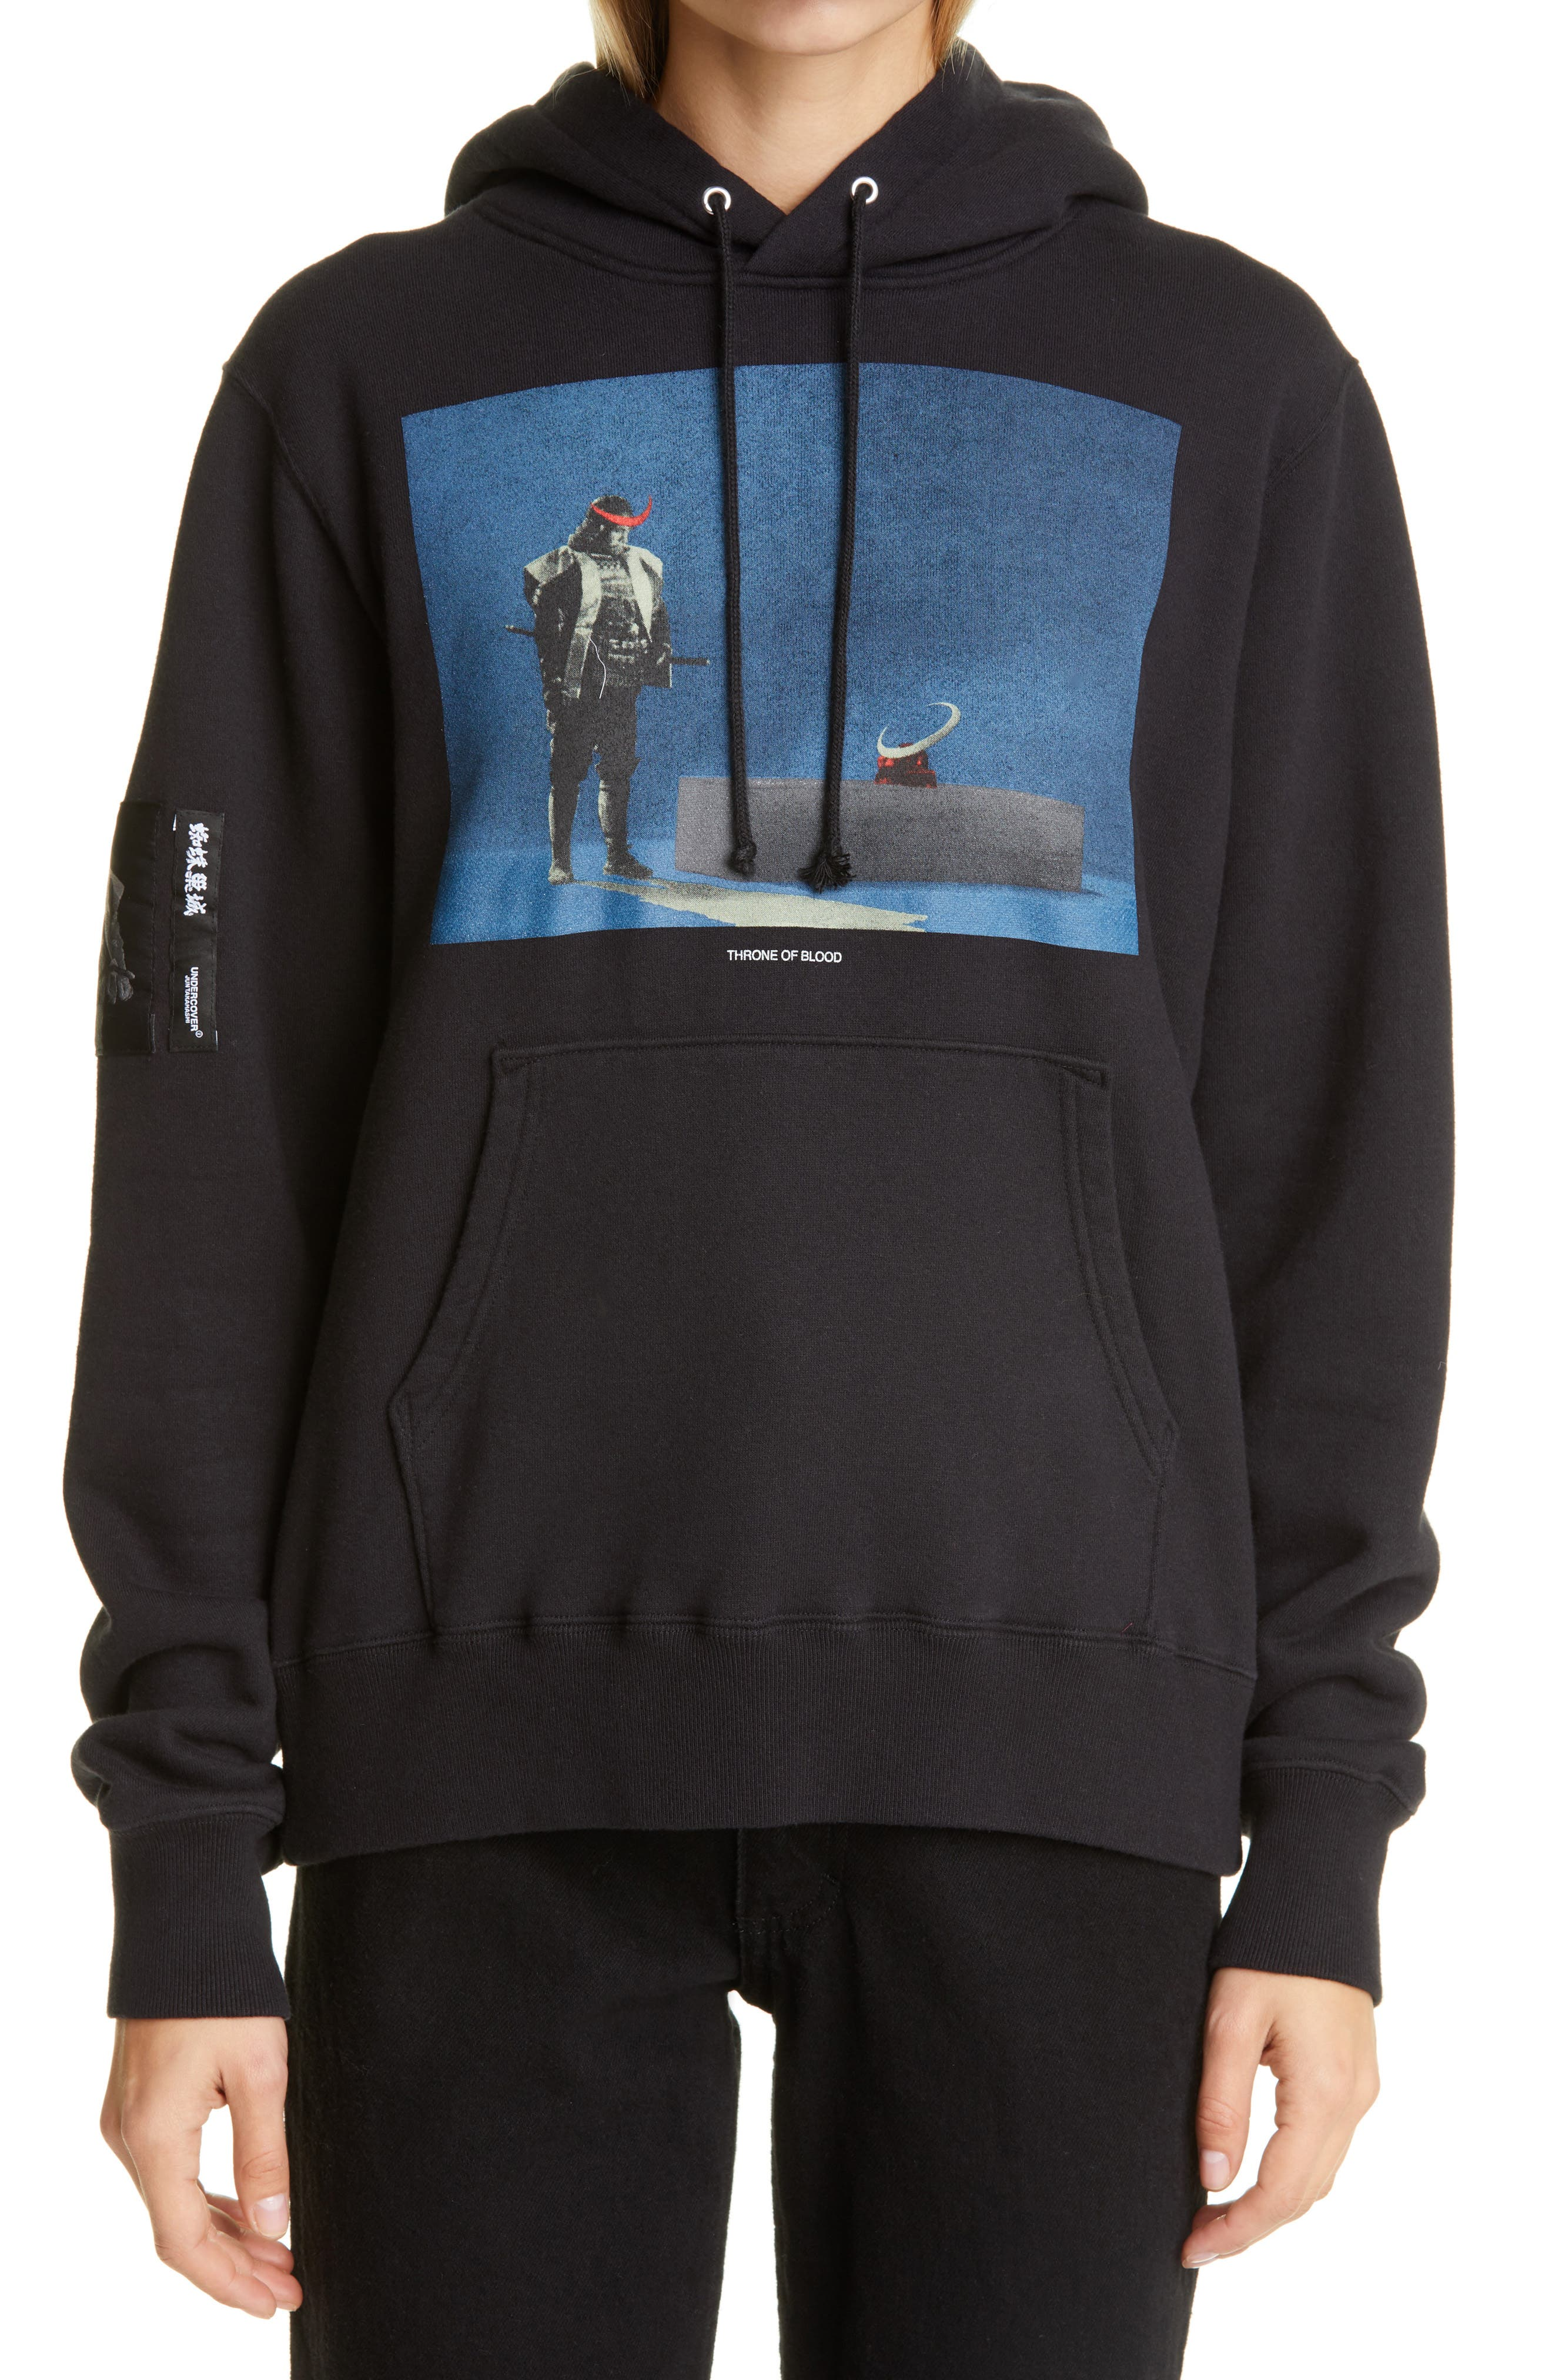 Undercover Throne of Blood Graphic Hoodie   Nordstrom